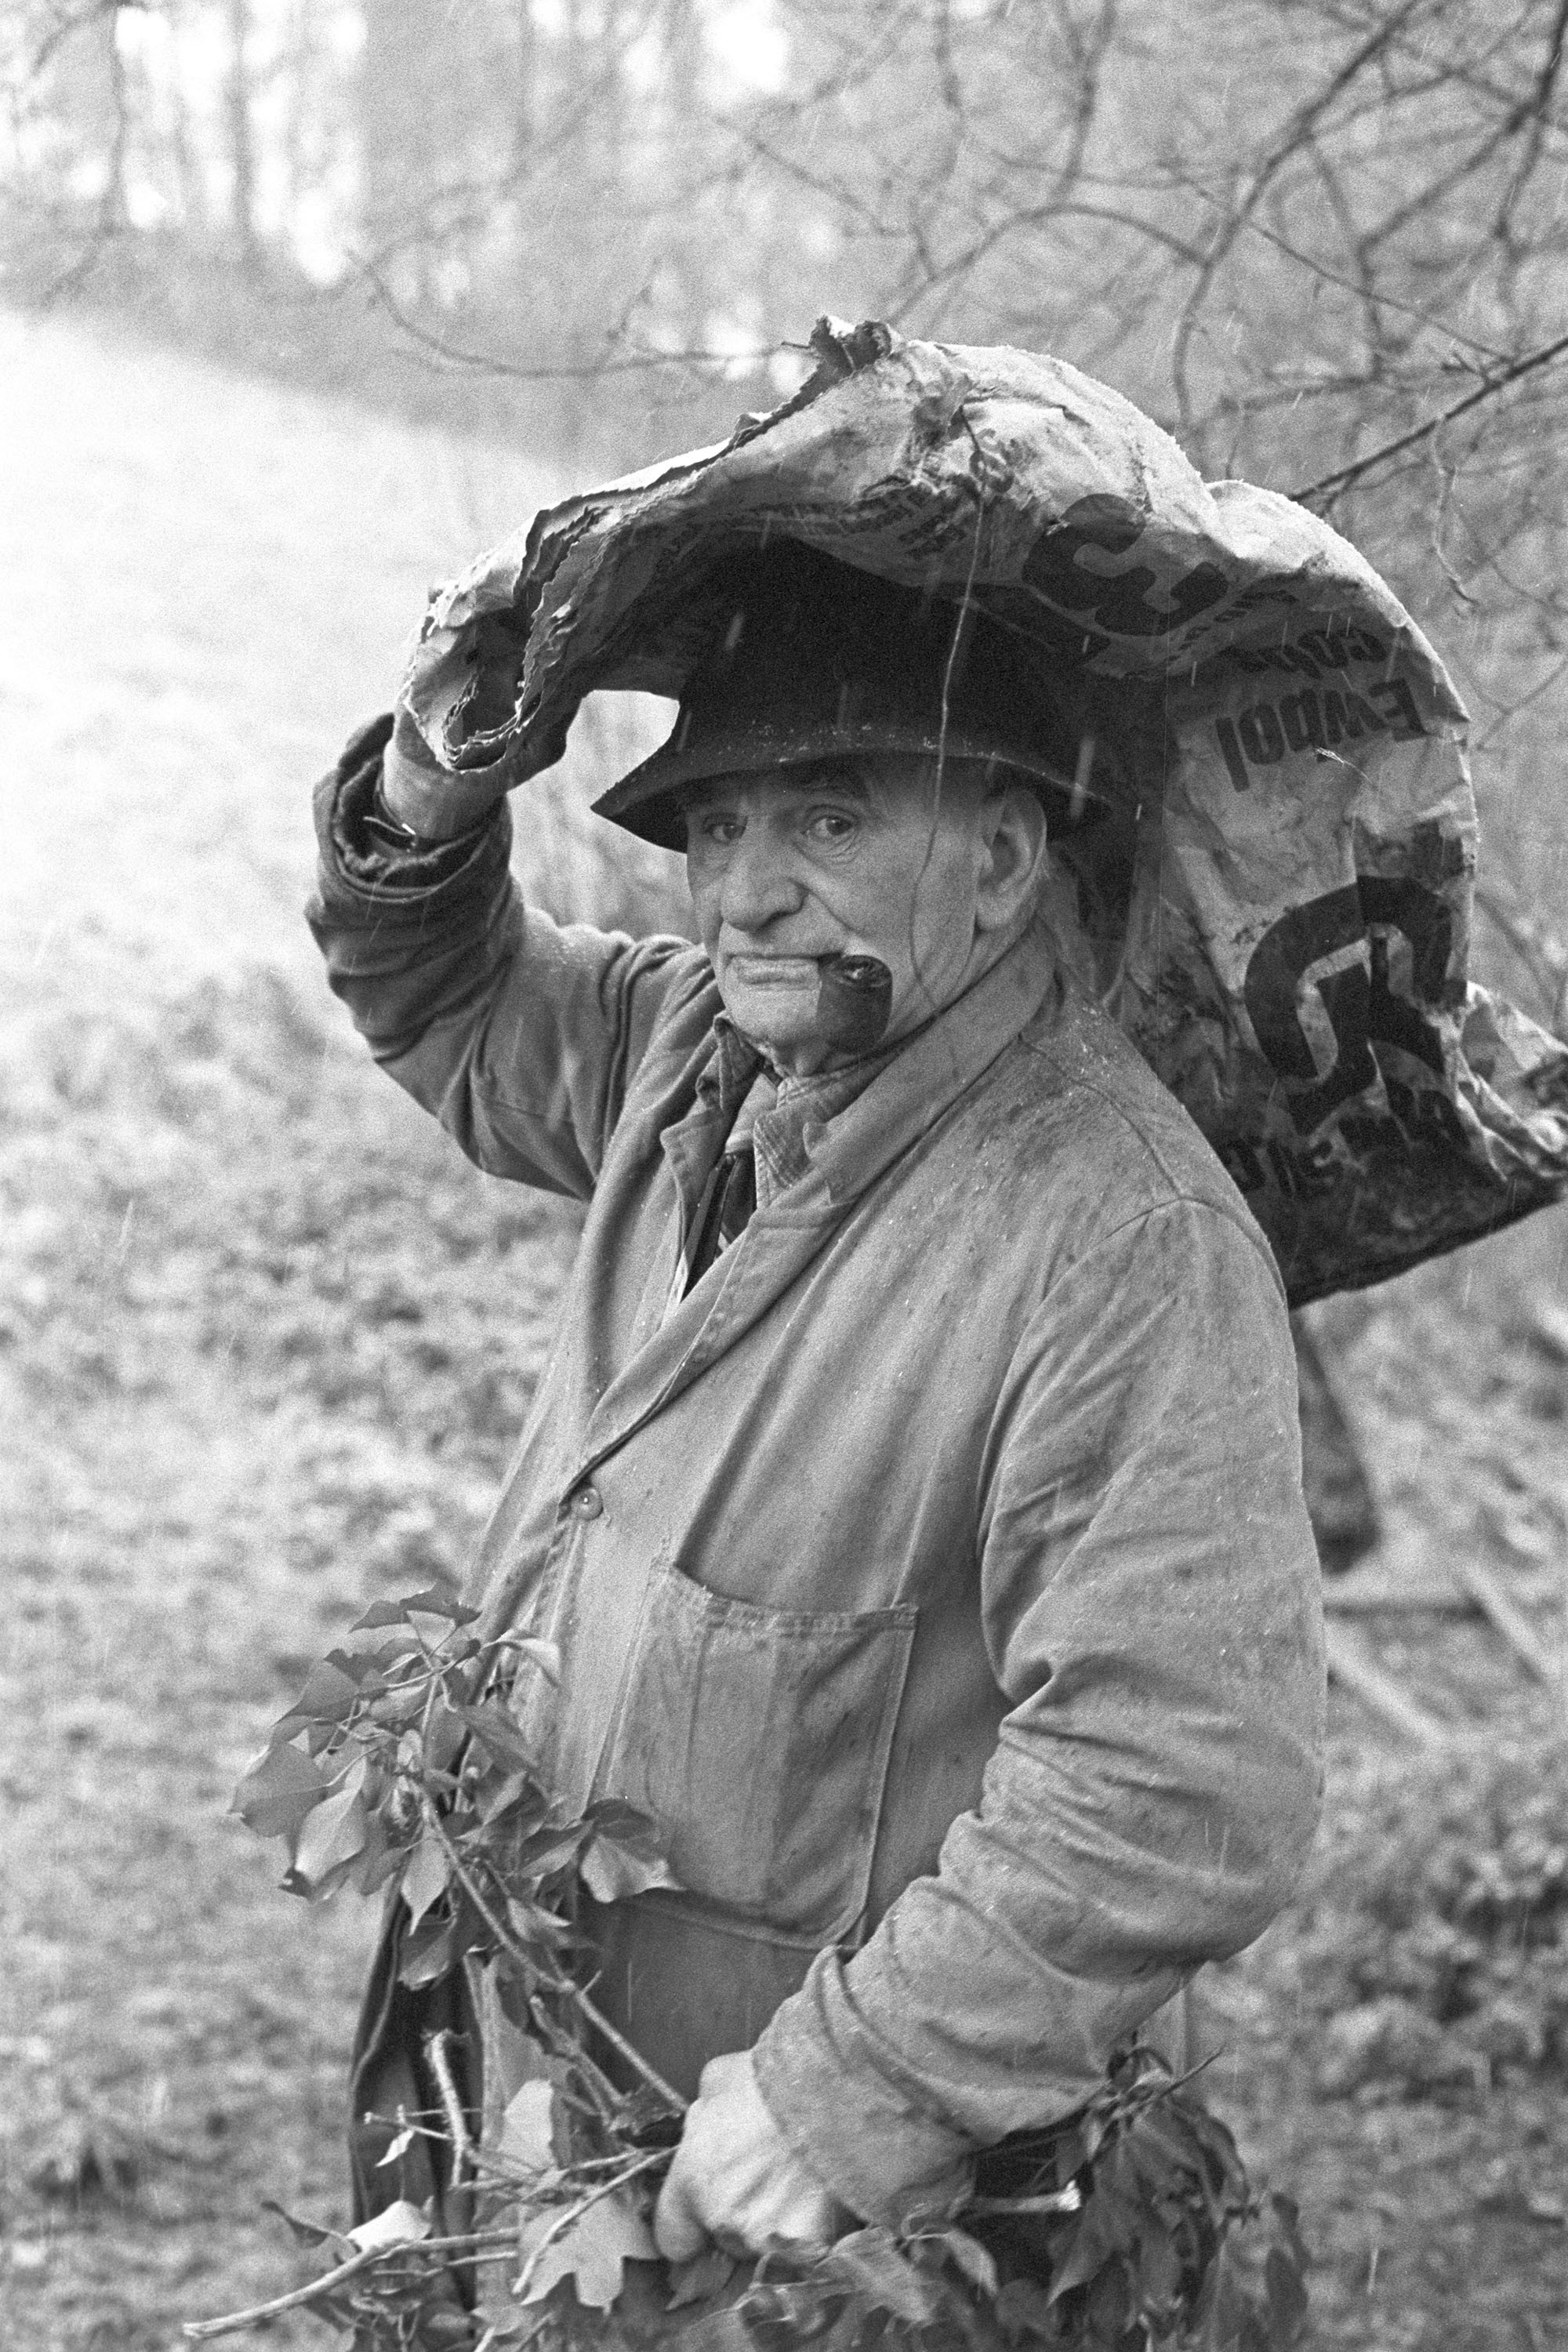 Archie Parkhouse with ivy for sheep, Millhams, Dolton, April 1975